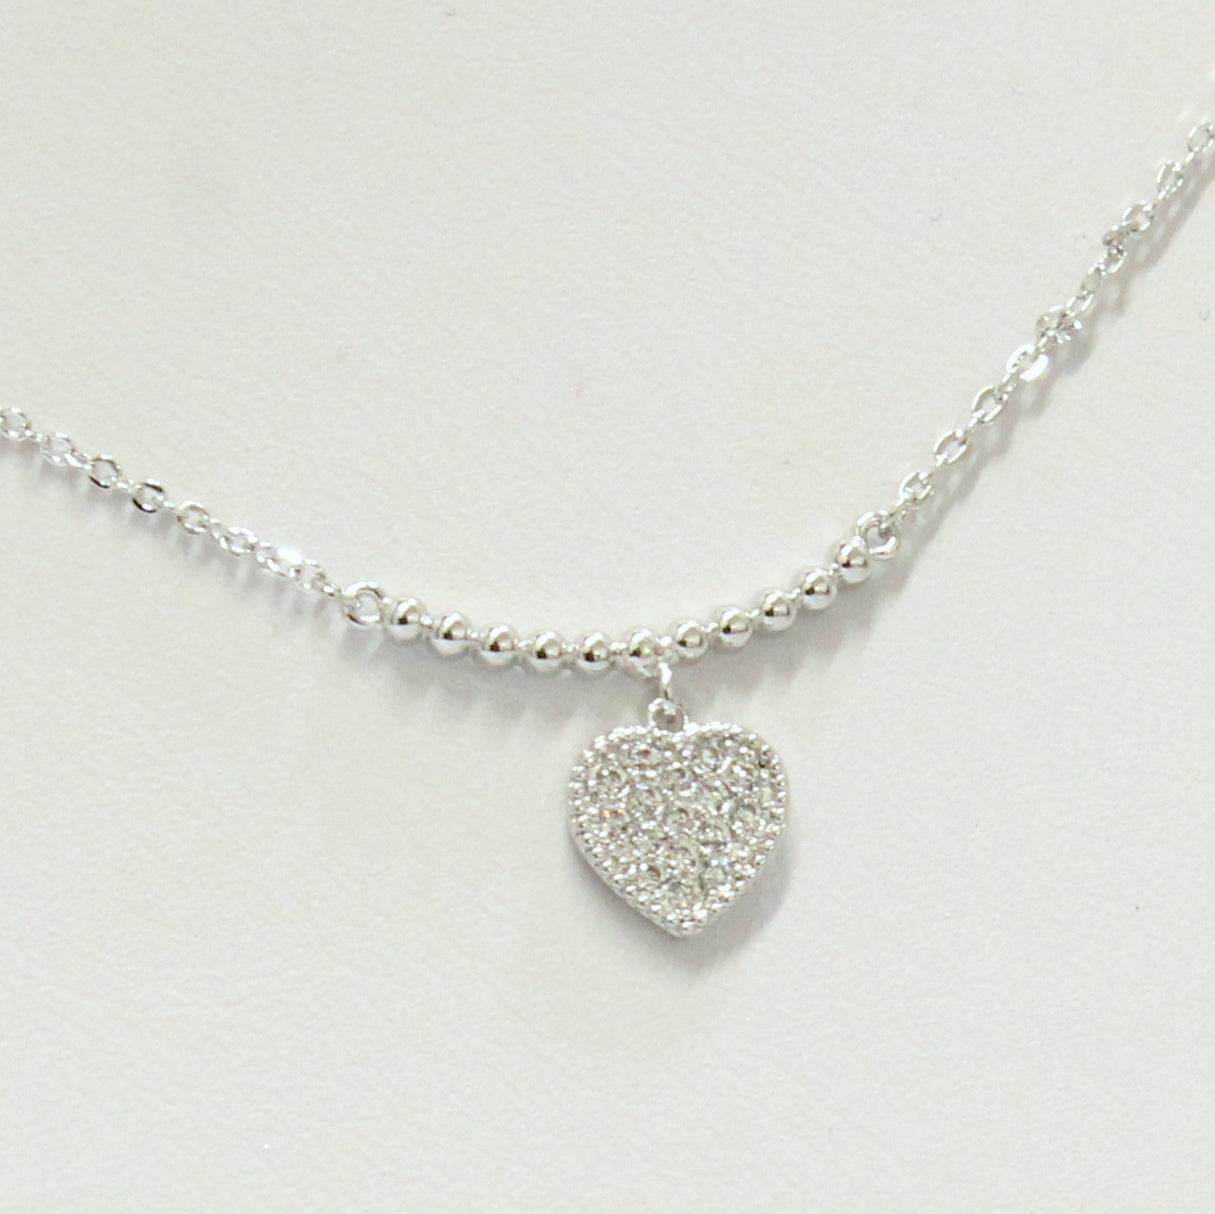 Alya - Thin Heart Necklace